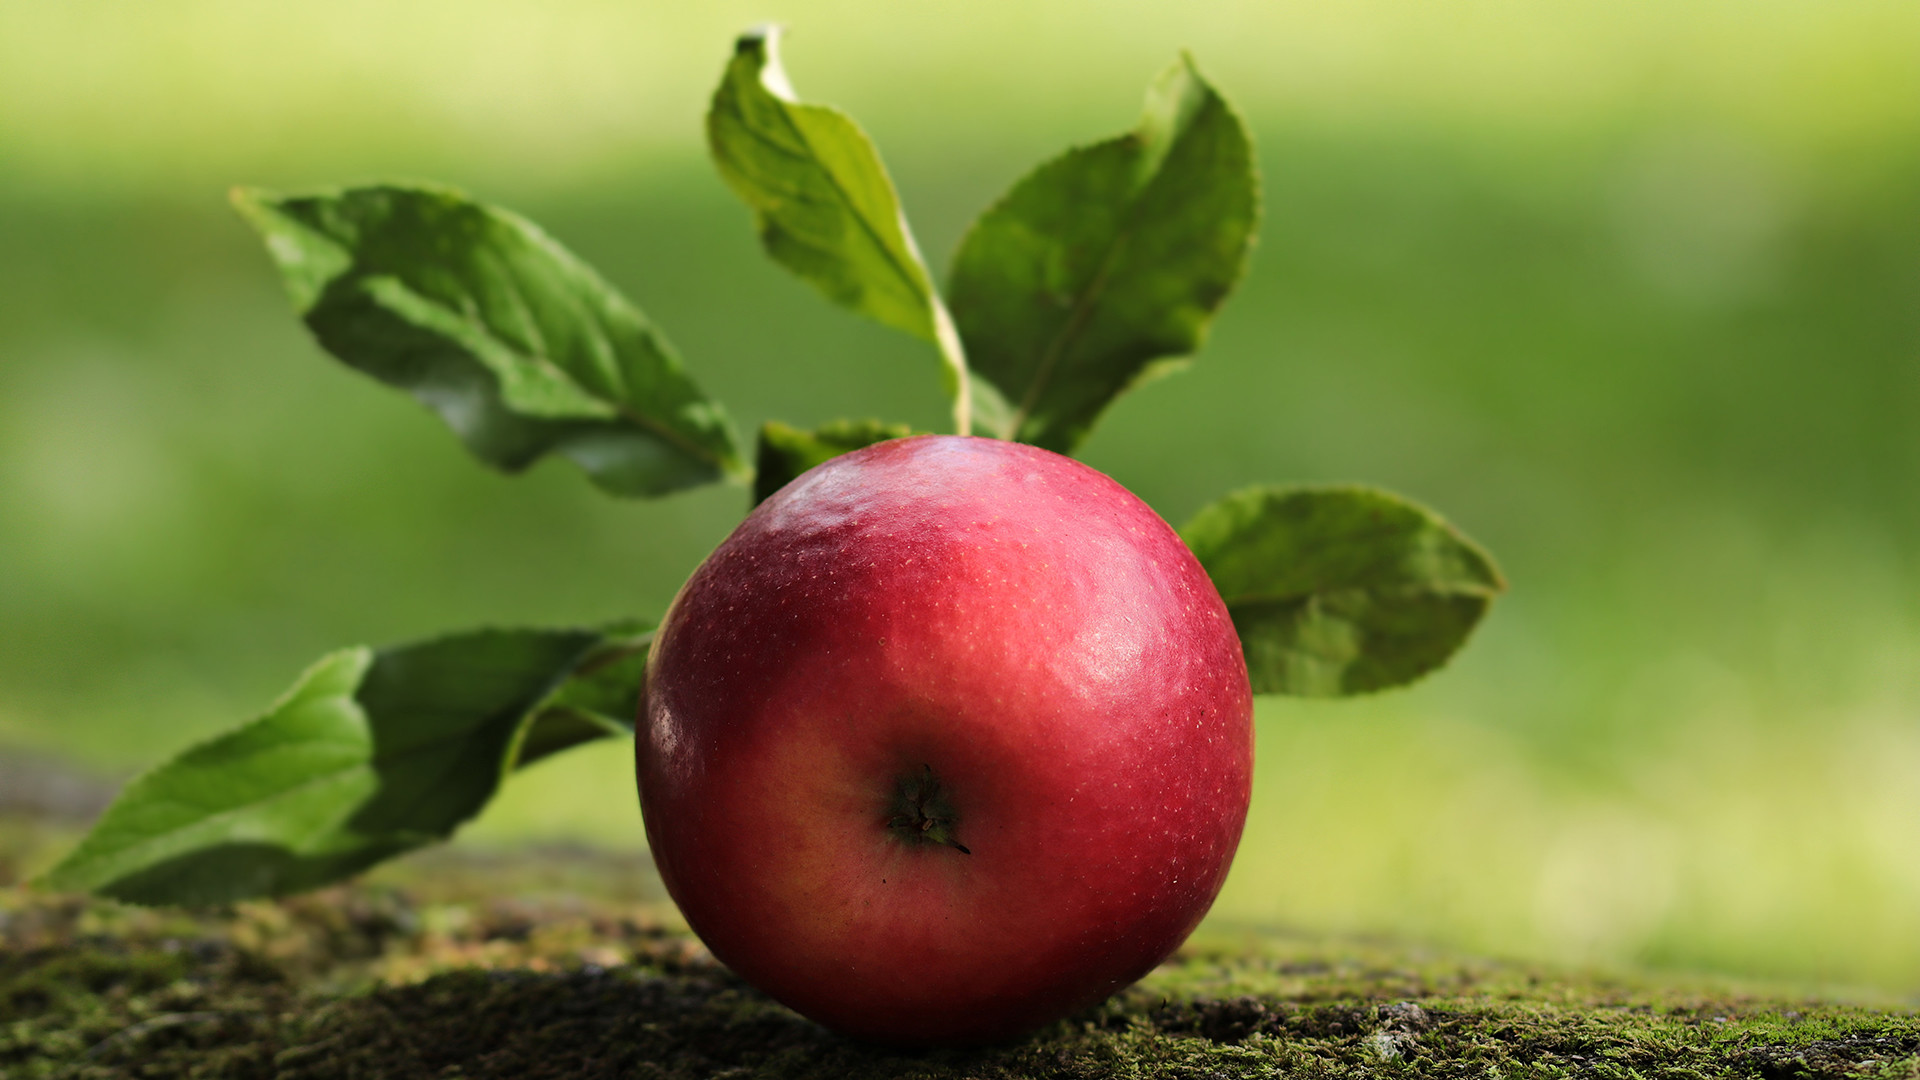 Red Apple Wallpaper 65 Pictures